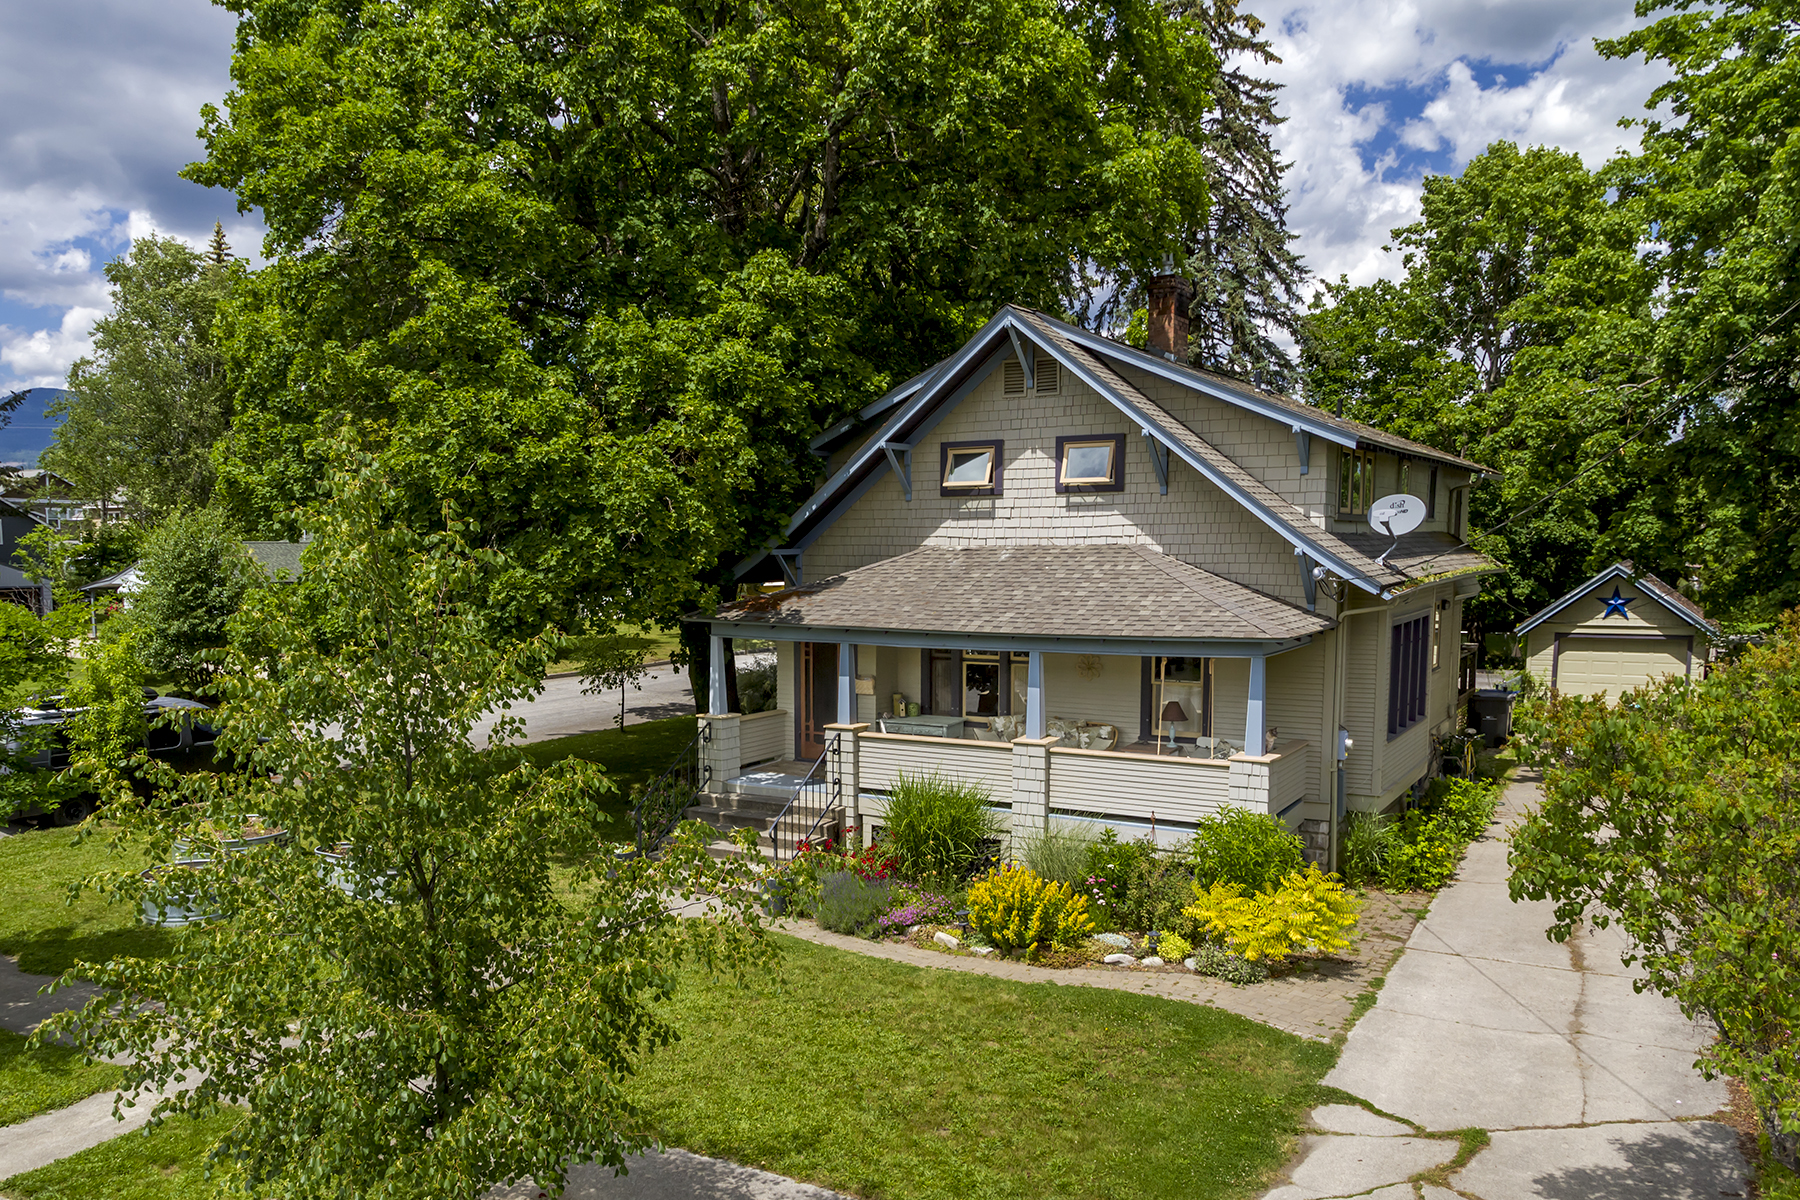 Single Family Home for Sale at Coveted So. Sandpoint Location!! 536 Erie Sandpoint, Idaho, 83864 United States